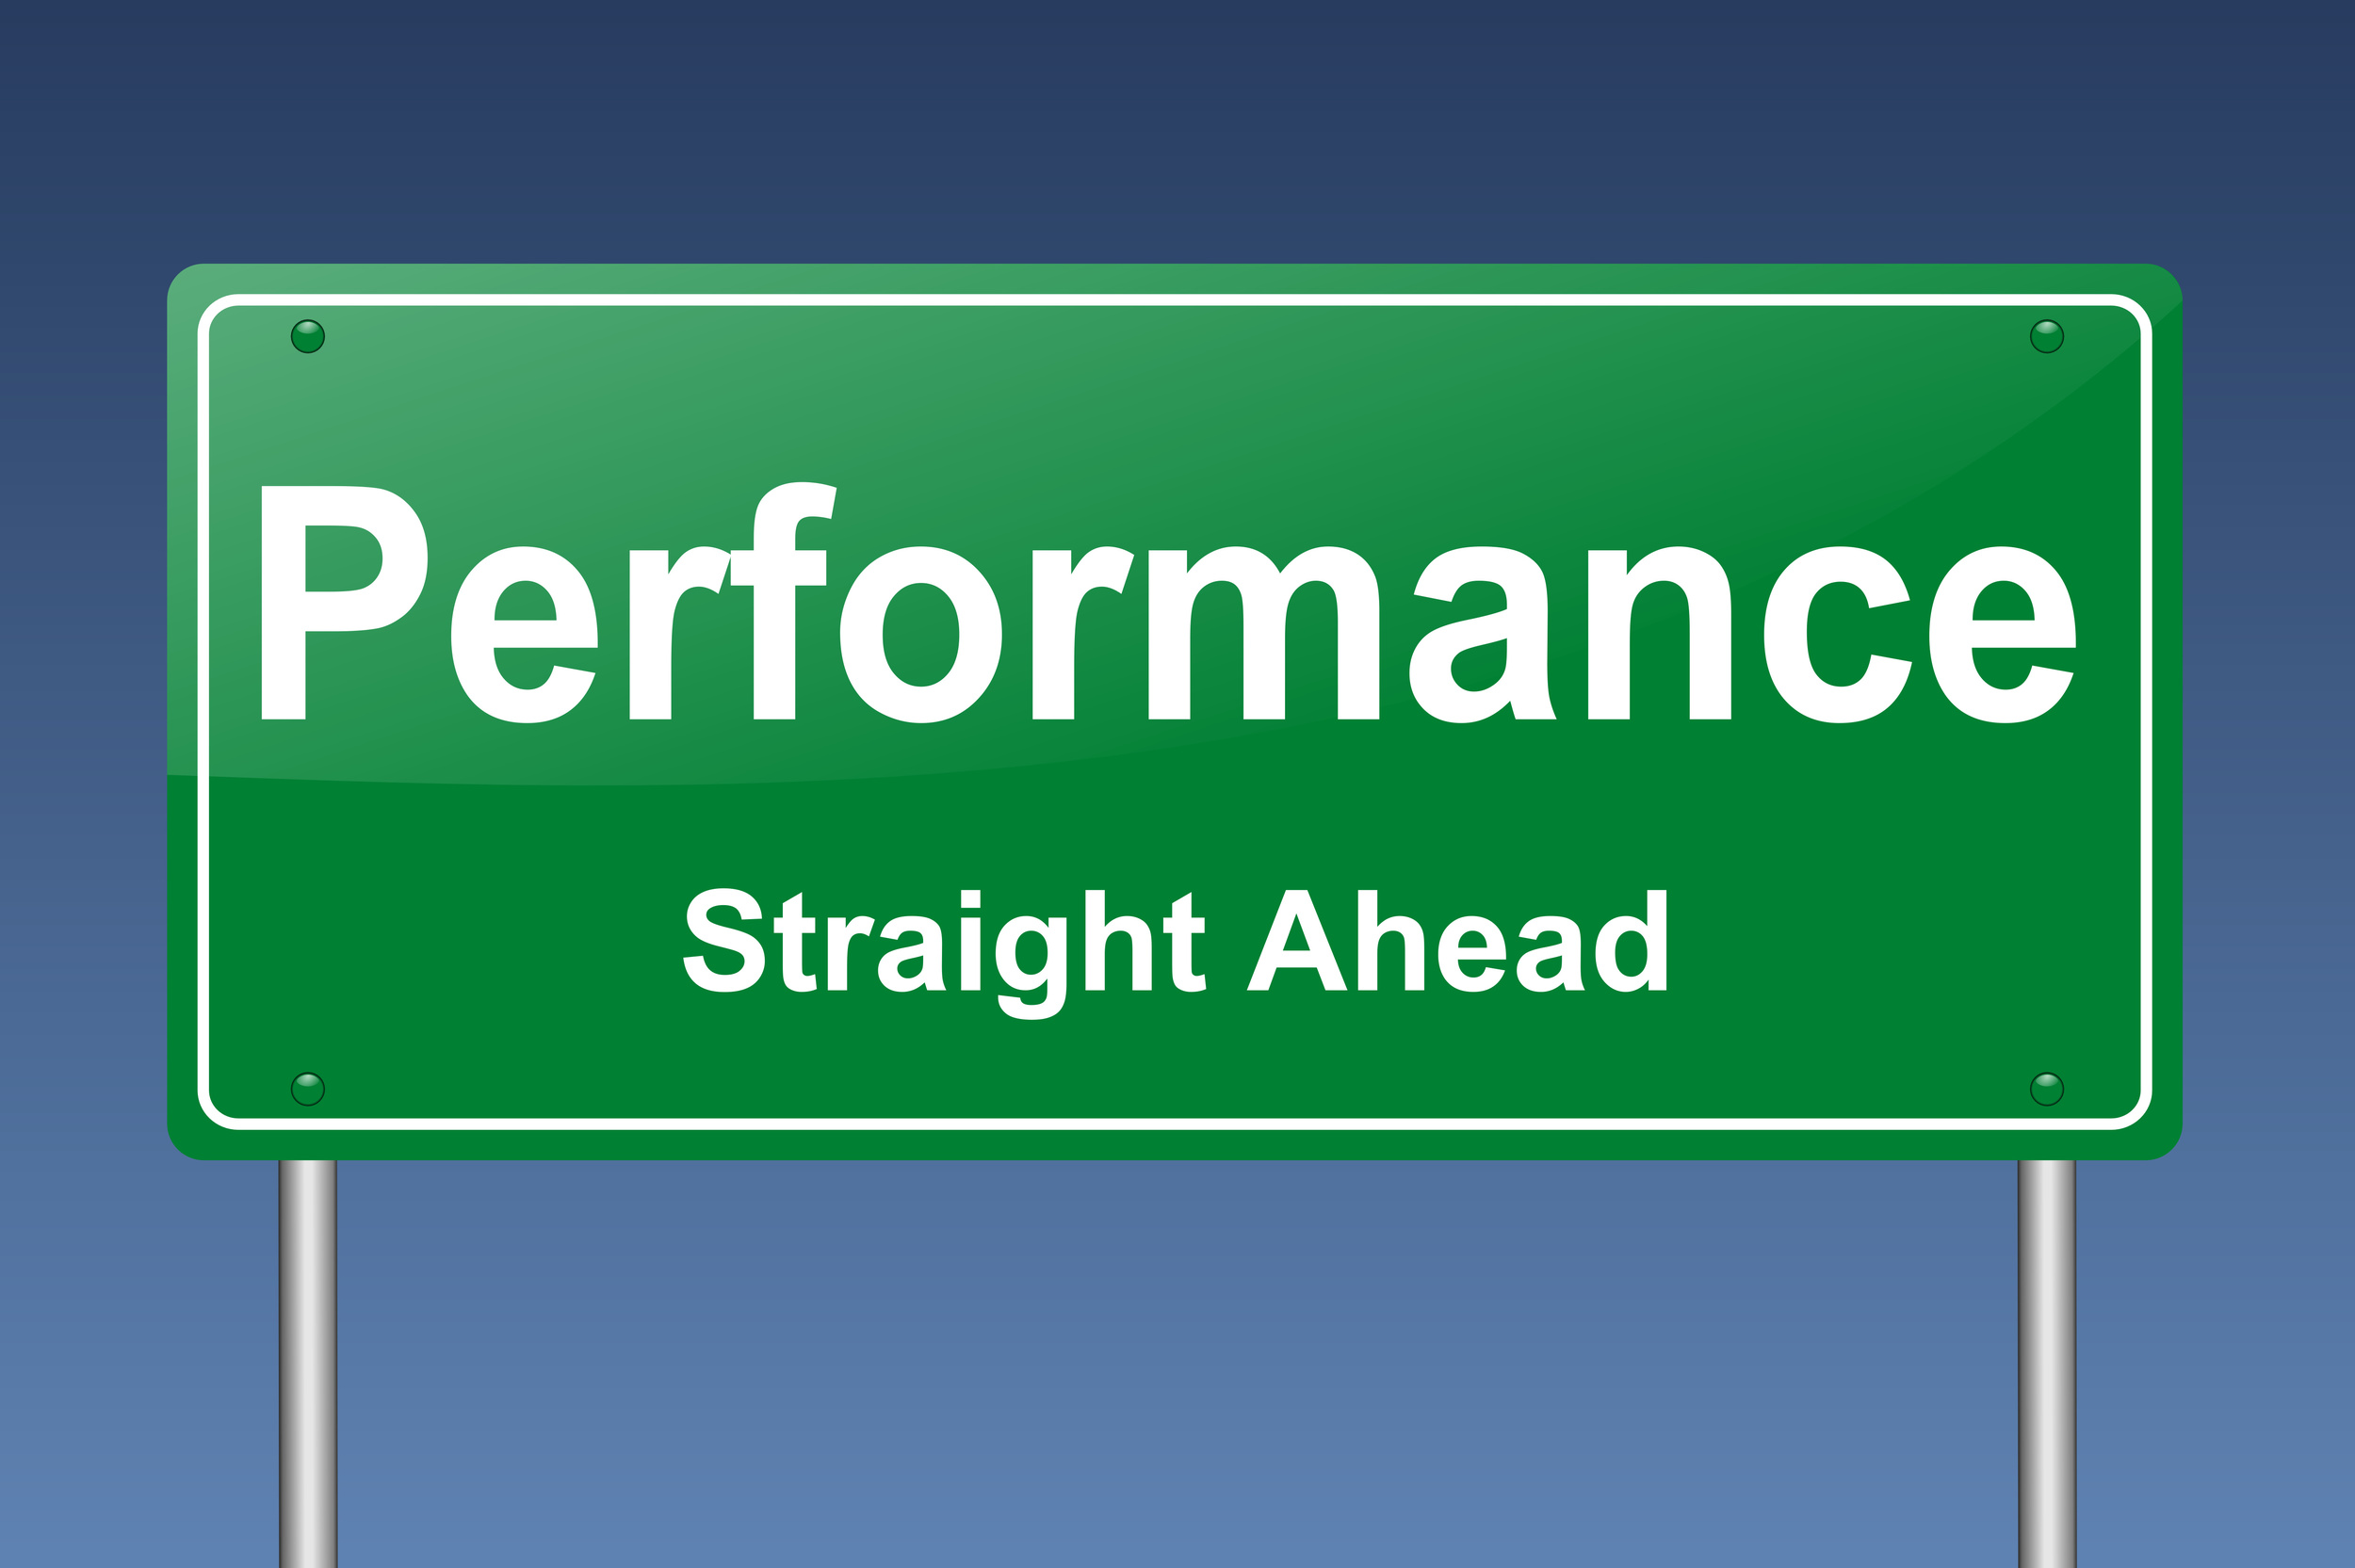 Performance street sign.jpg